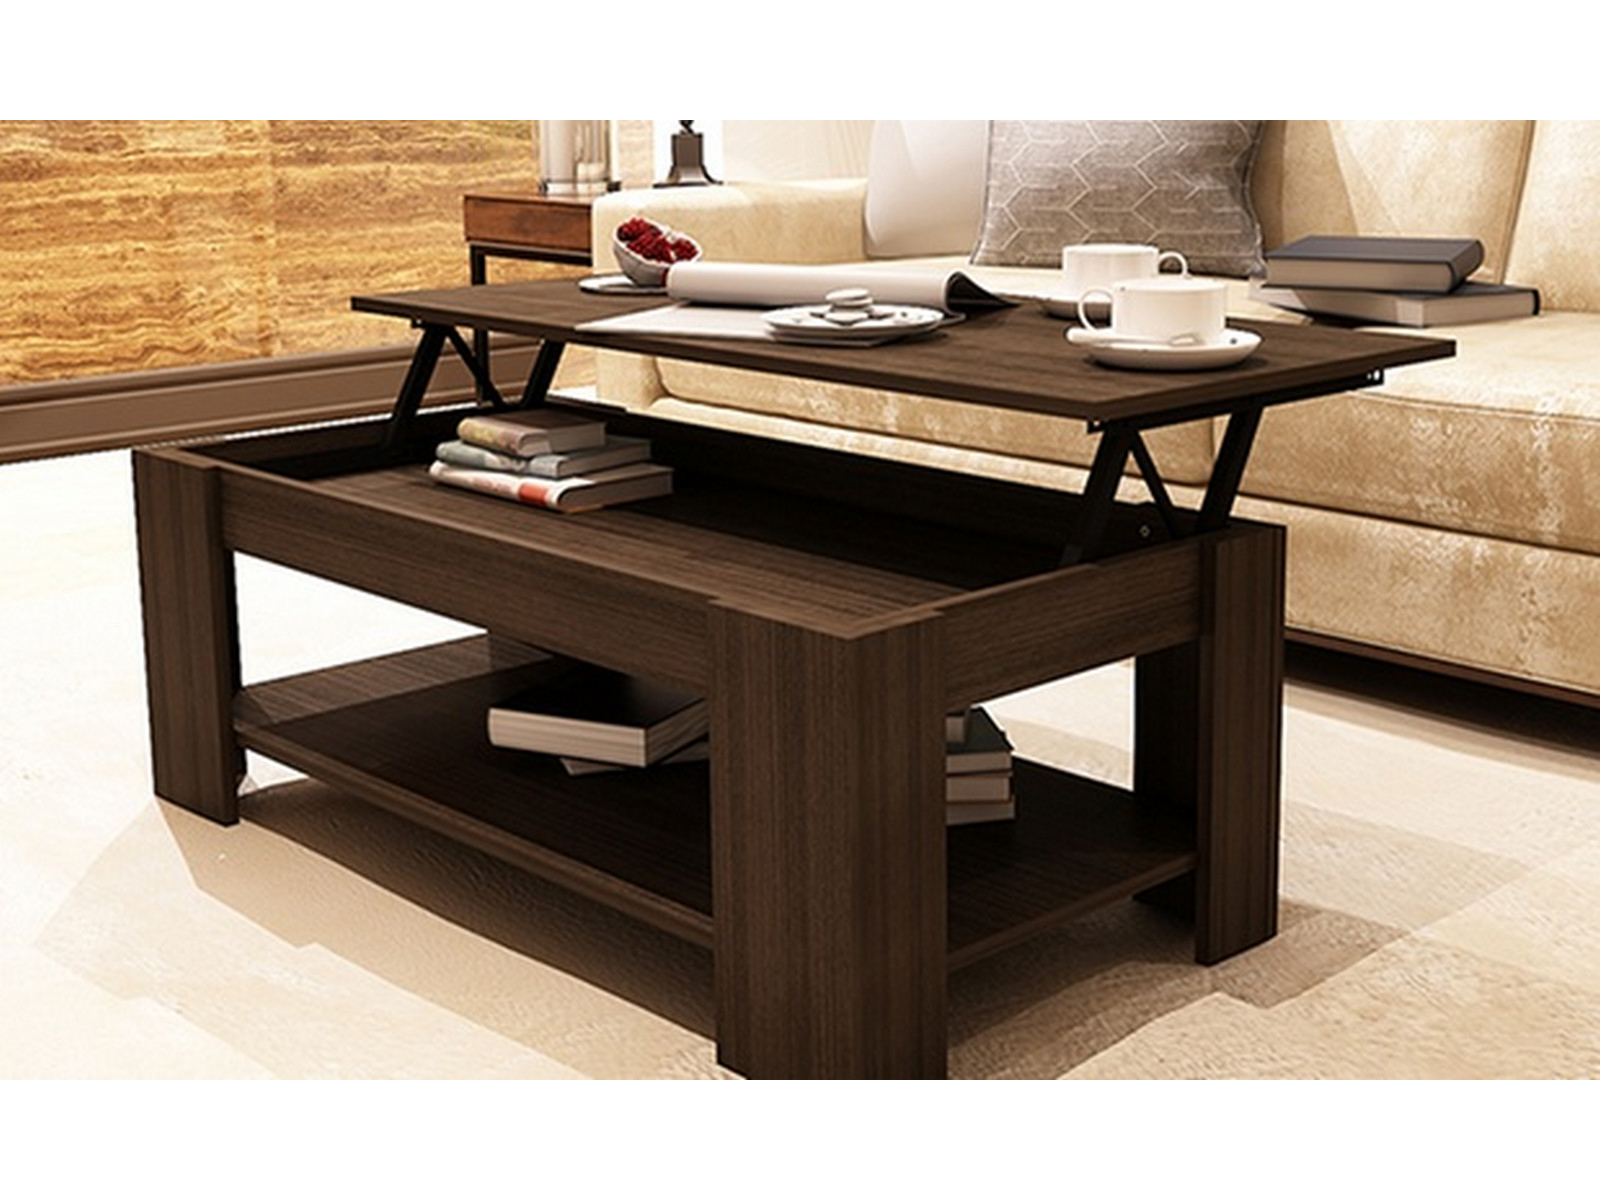 New Caspian Espresso Lift Top Coffee Table With Storage